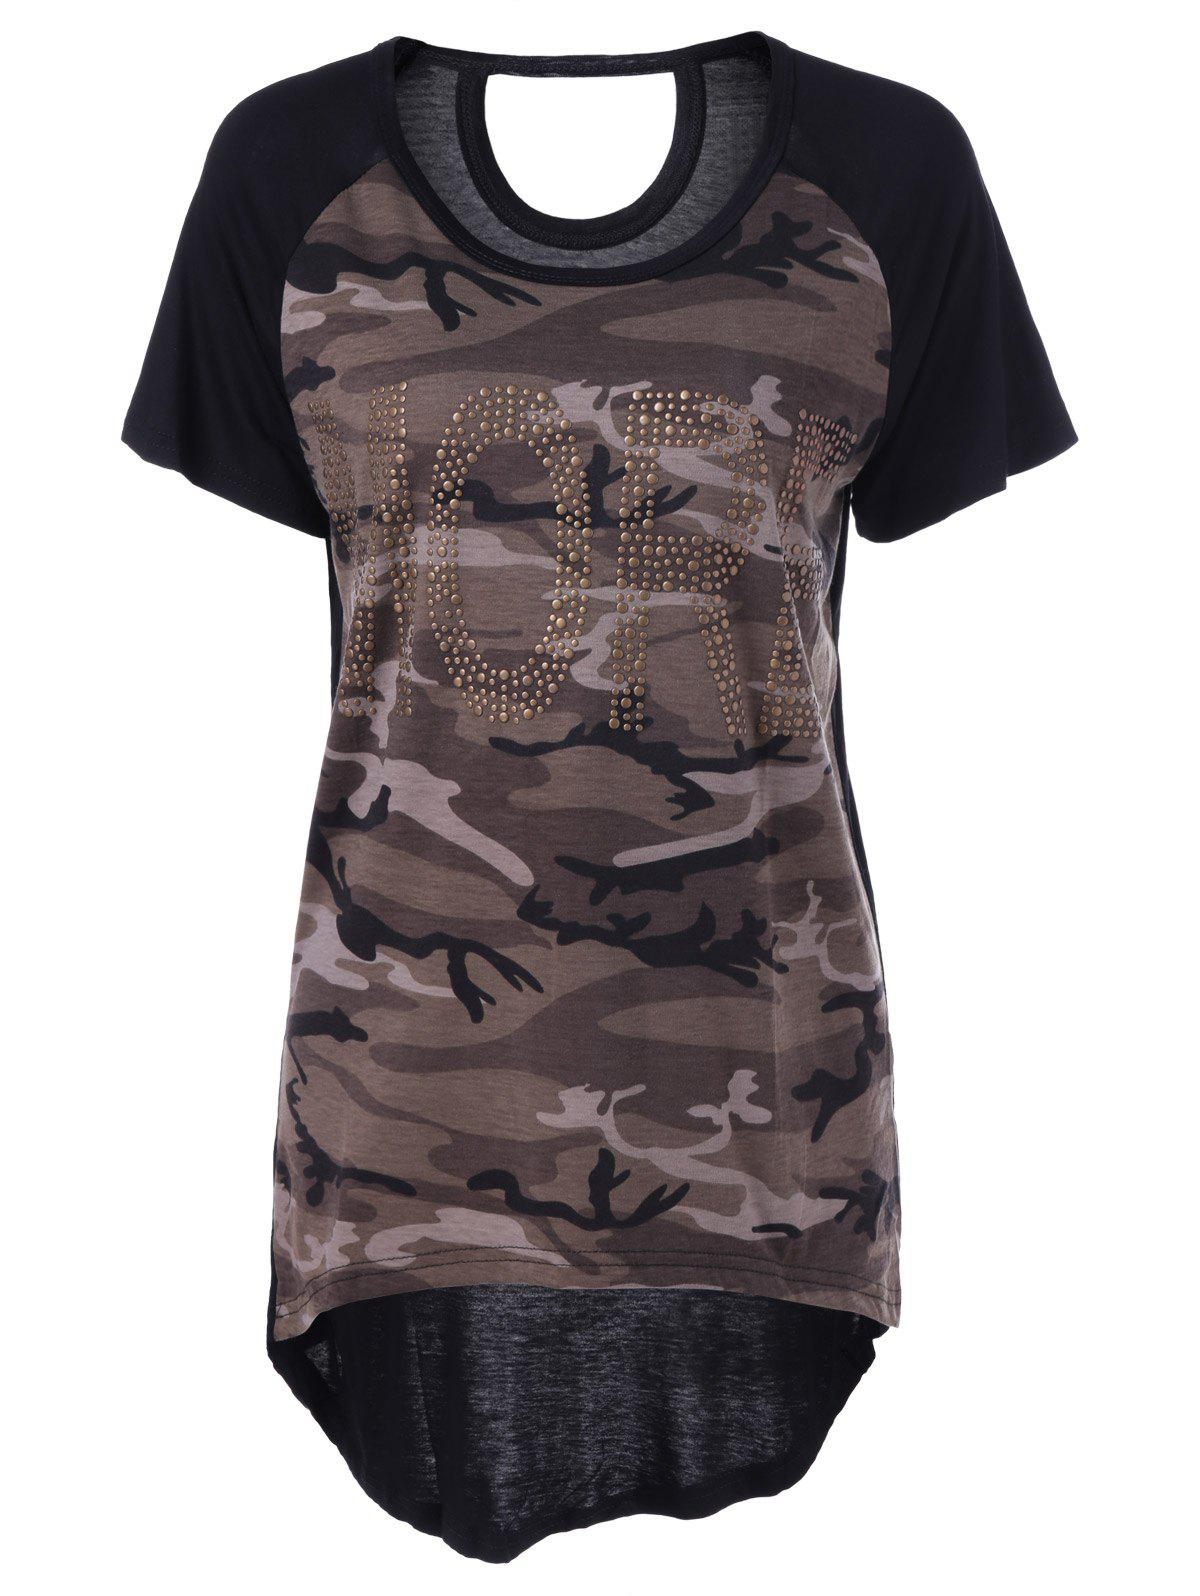 Casual Women's ScoopNeck Camouflage Short Sleeves Top - BLACK ONE SIZE(FIT SIZE XS TO M)